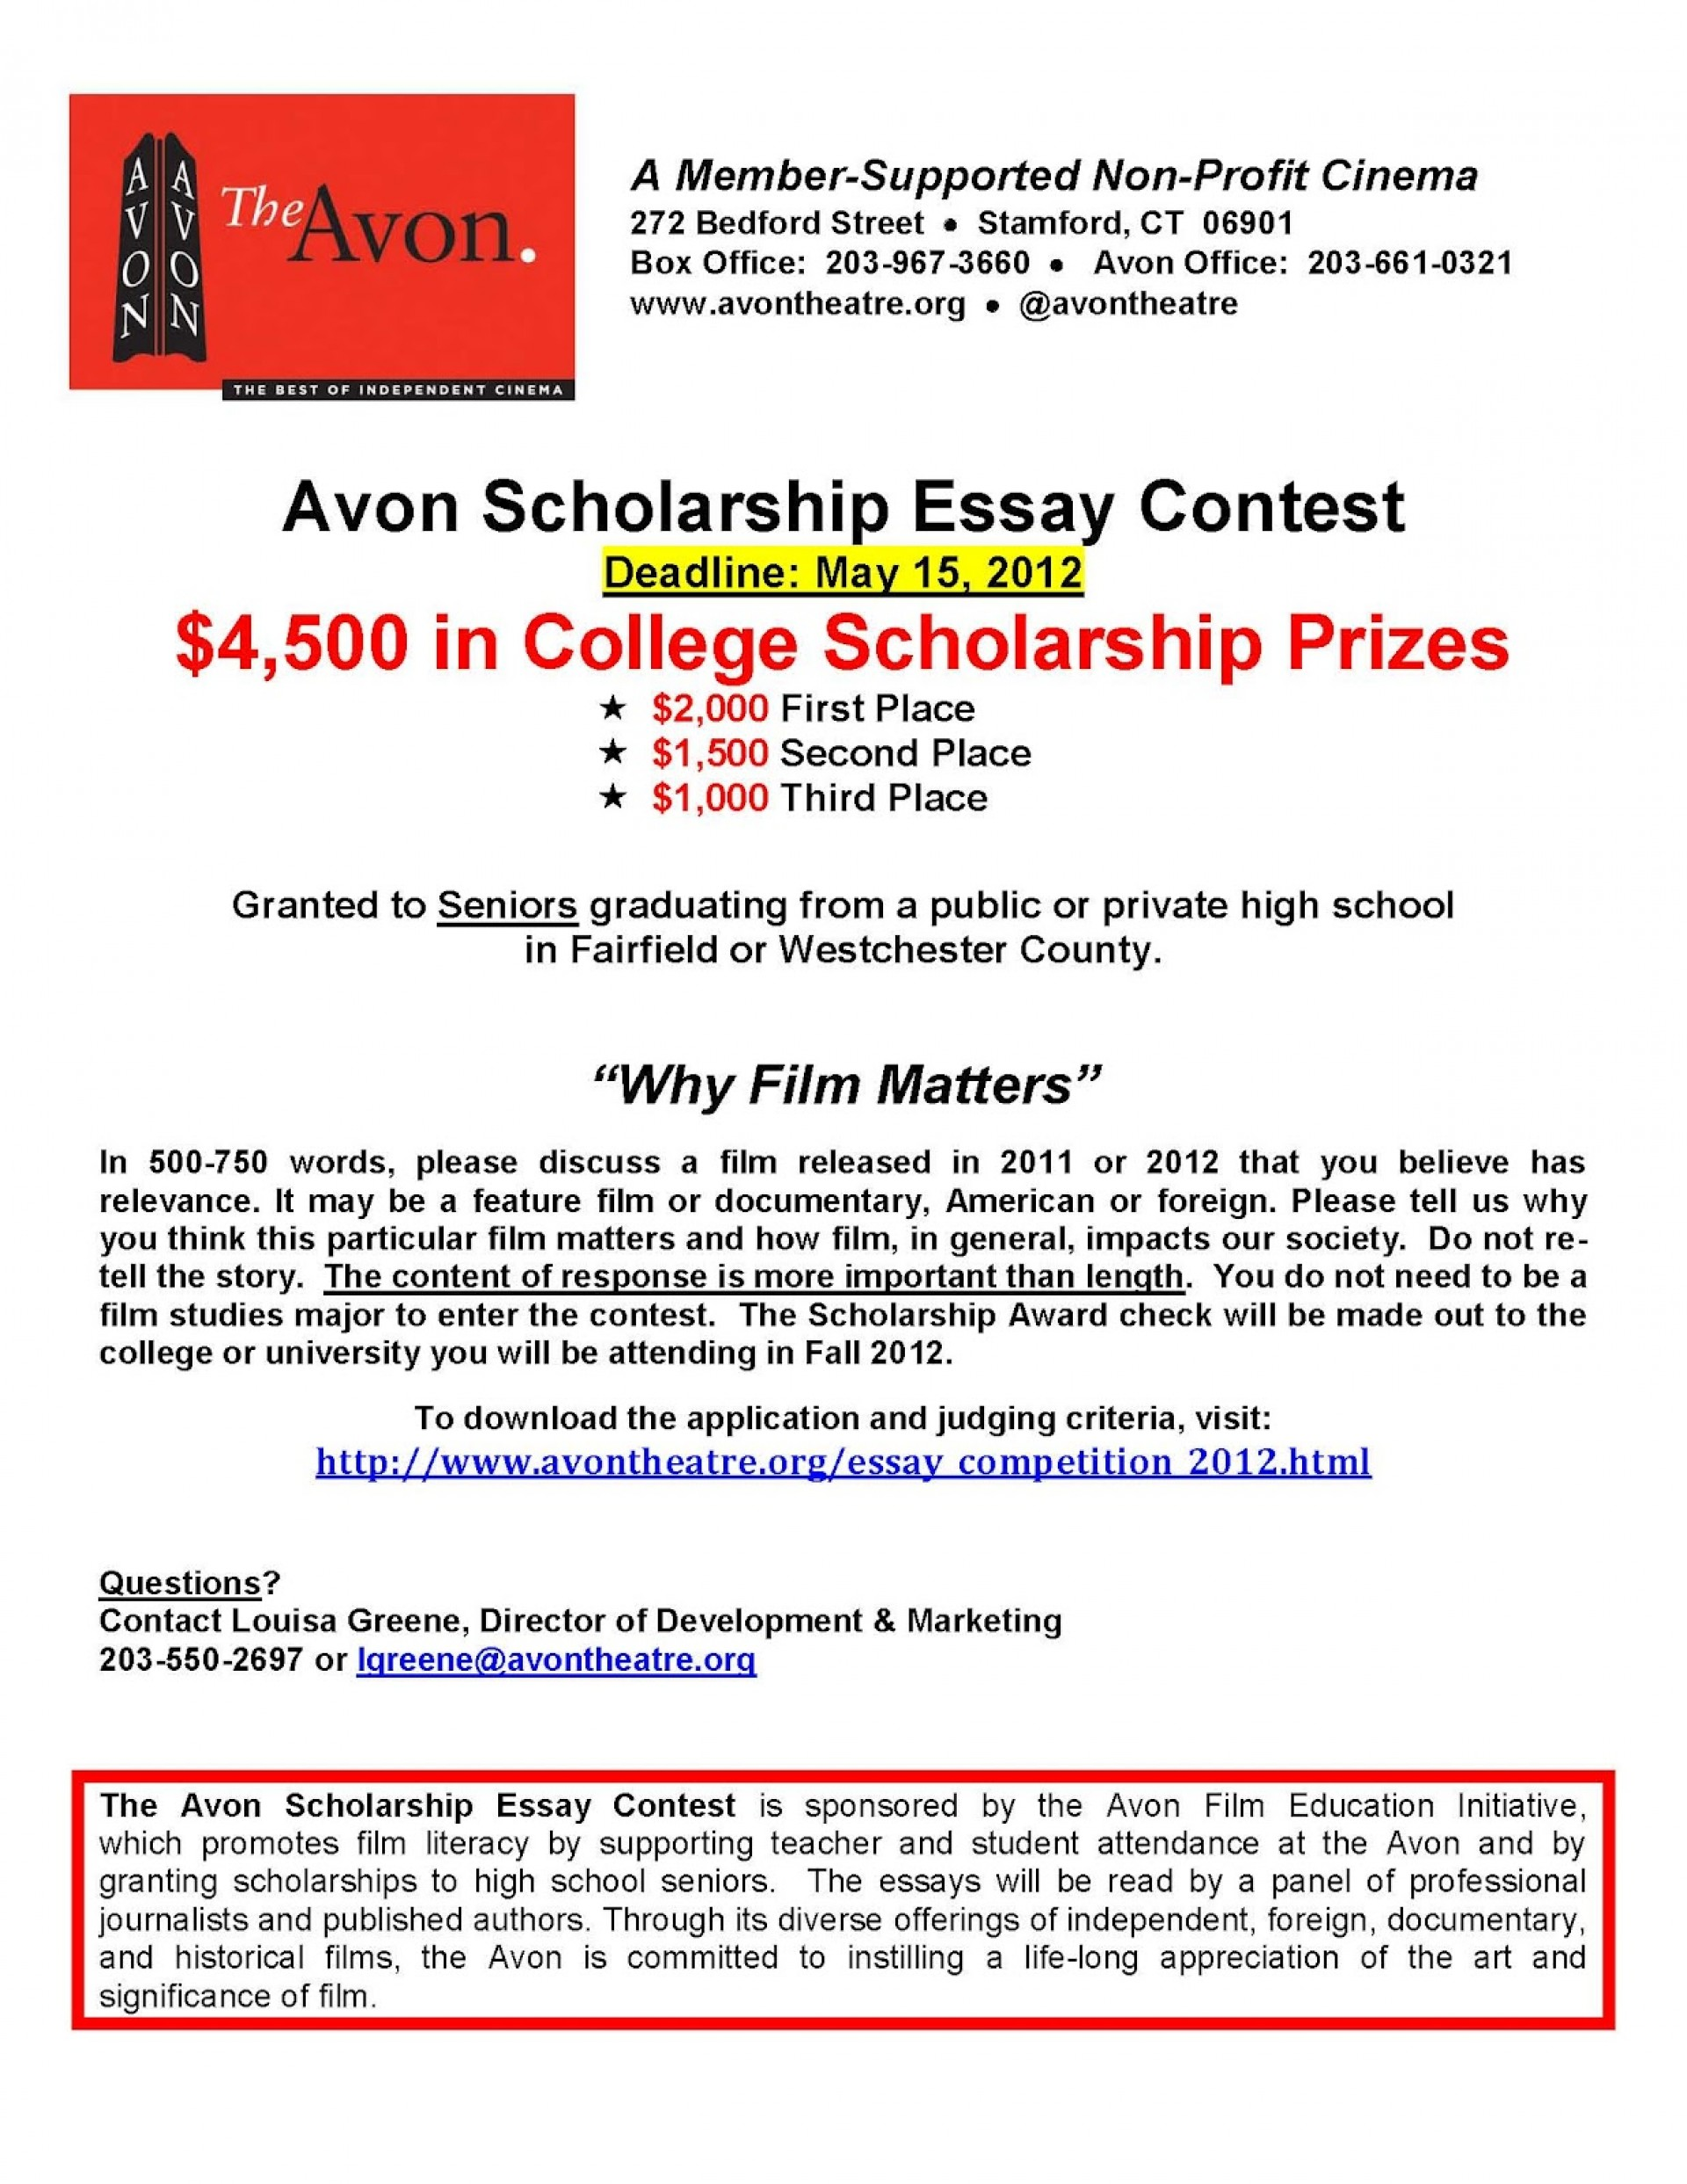 004 Essay Example No College Scholarships Scholarship Prowler Free For High School Seniors Avonscholarshipessaycontest2012 In Texas California Class Of Imposing Students Legit 1920